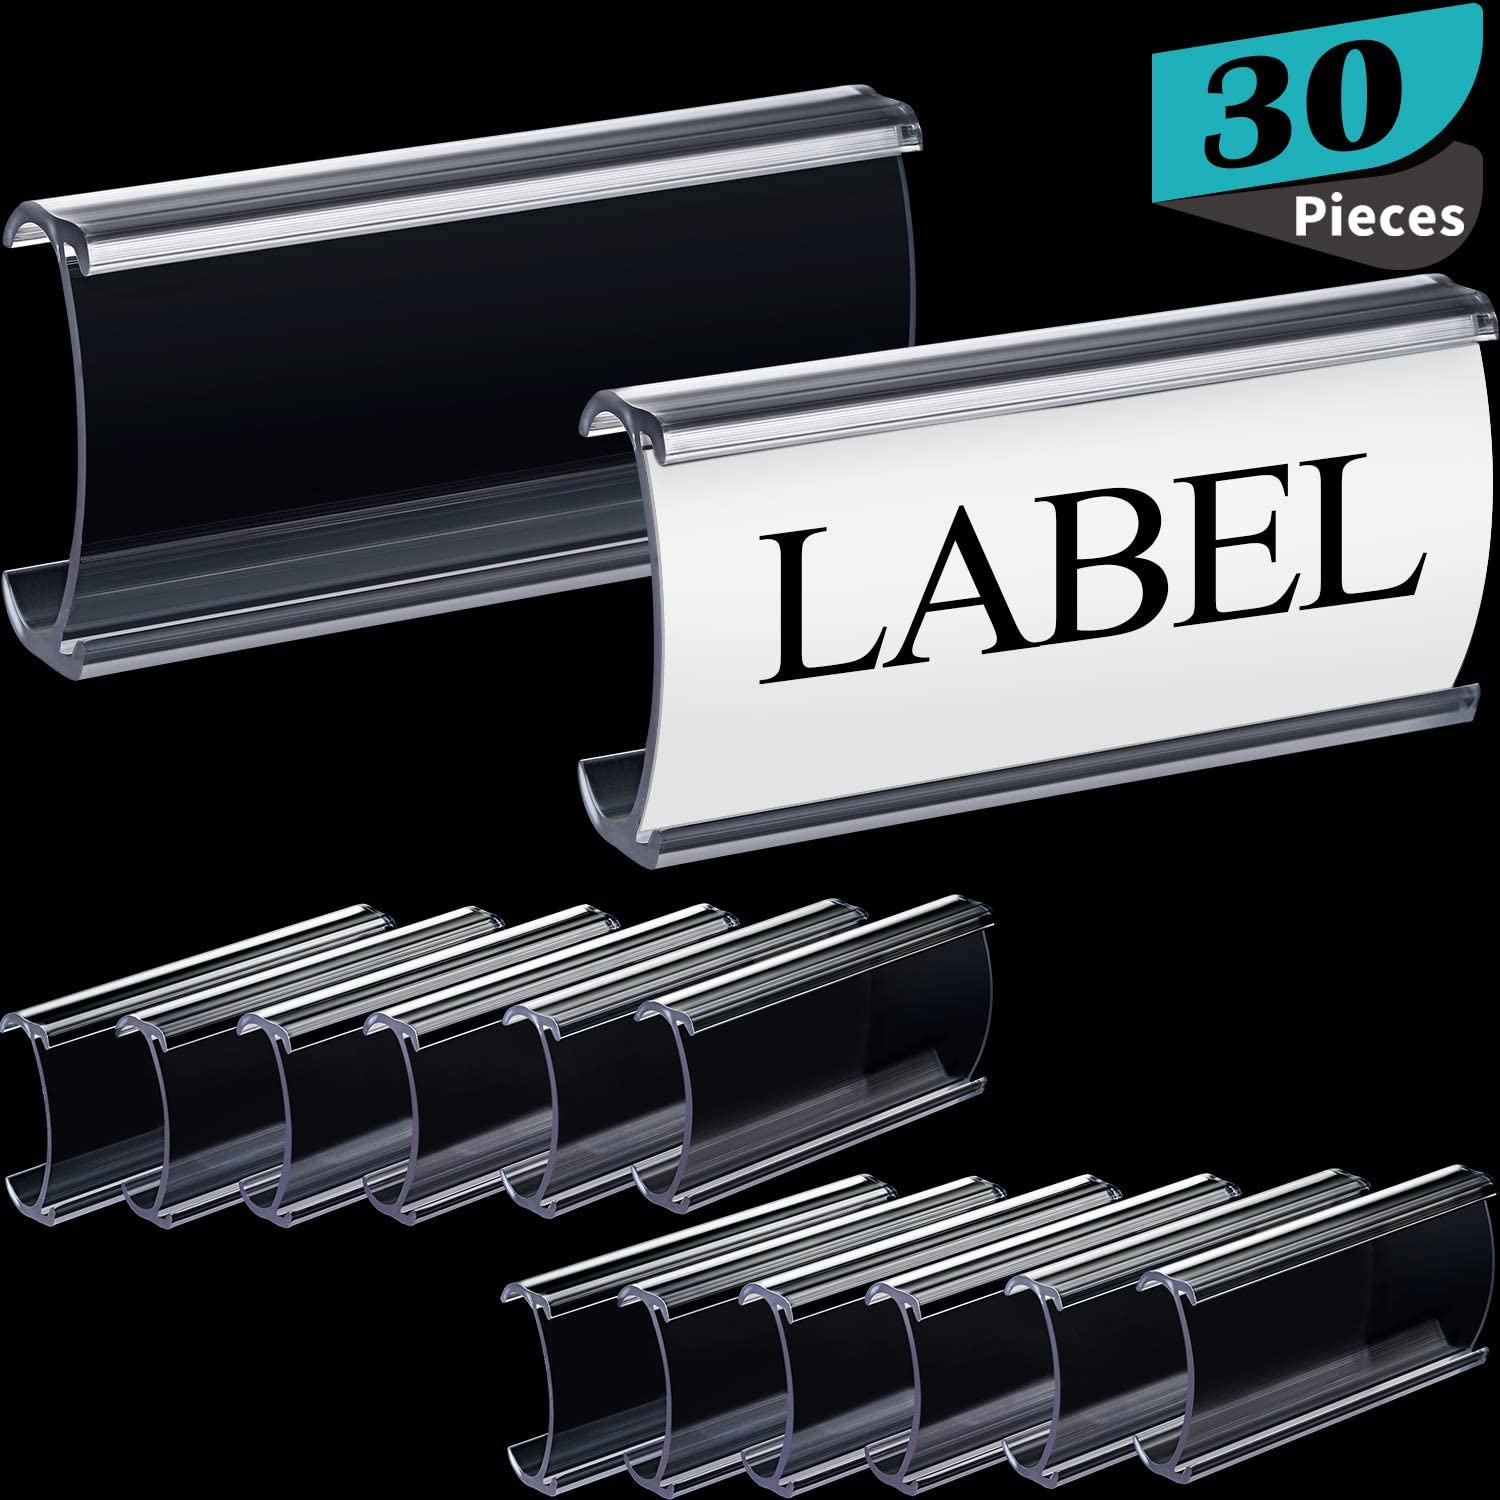 Plastic Label Holders Wire Shelf Label Holders Clear Plastic Shelf Label Holders Compatible with Metro Shelves, 3 x 1.25 Inches (30 Packs)